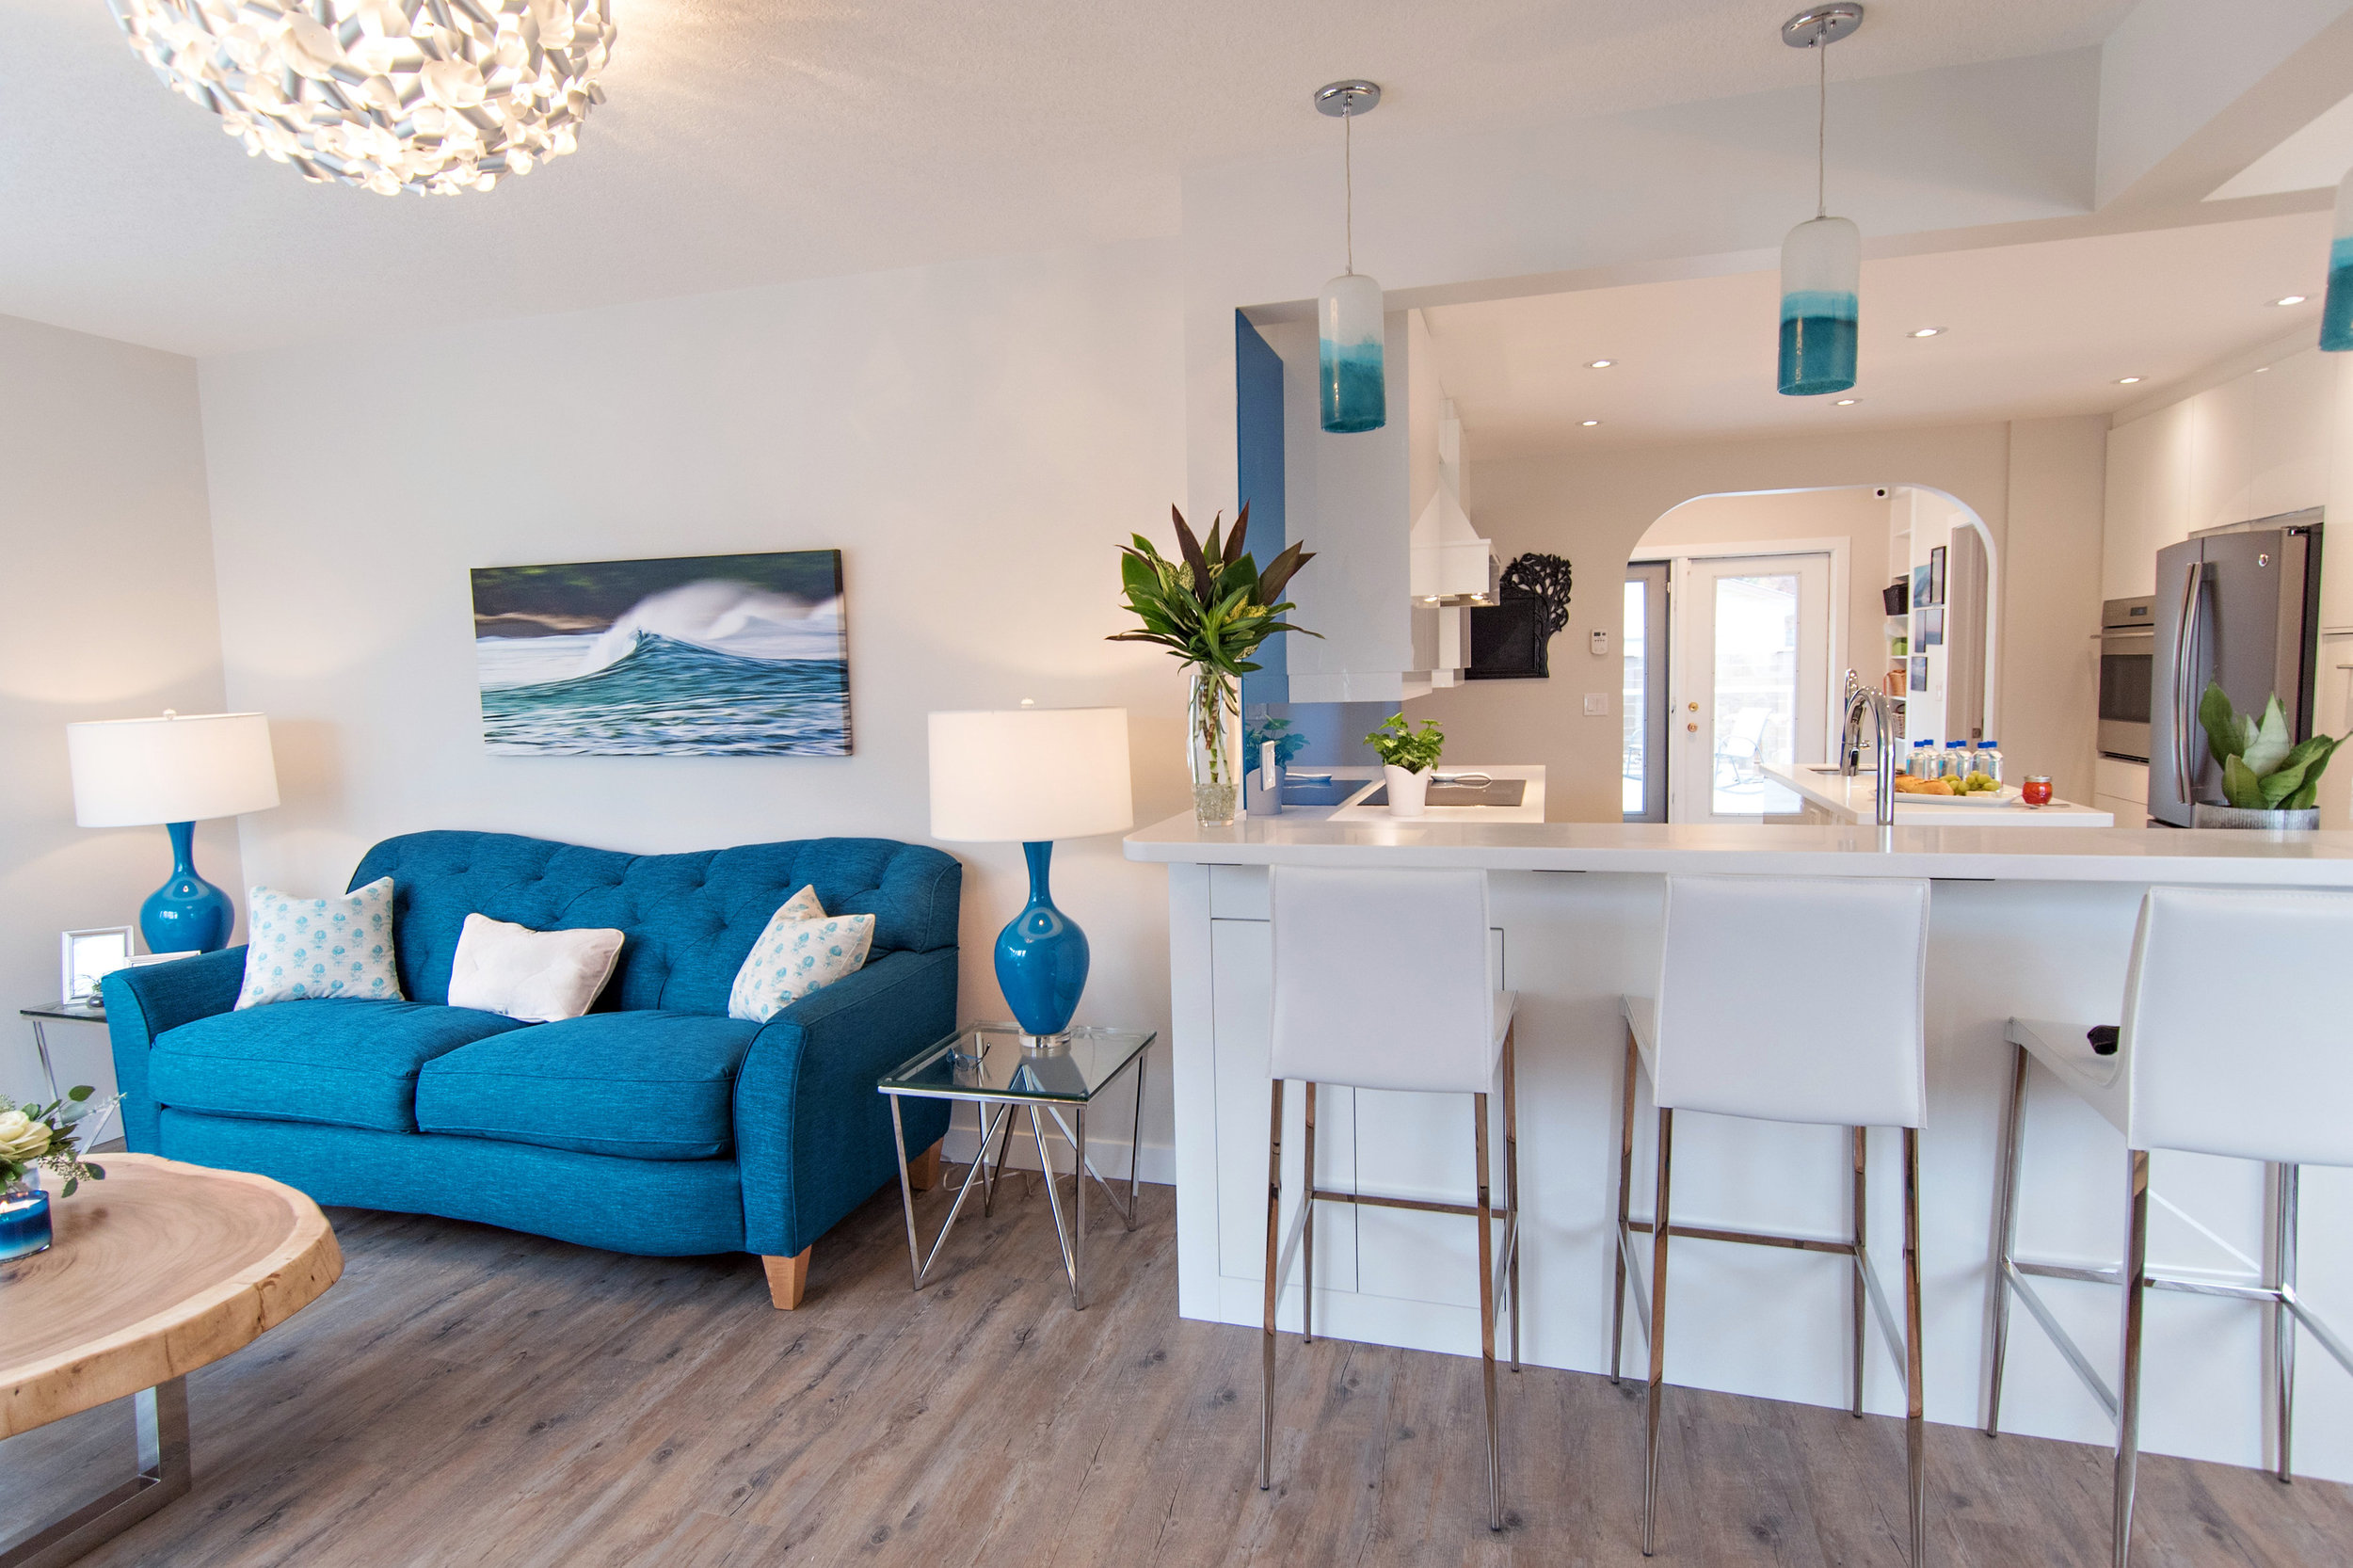 living room with a blue sofa, vinyl plank floor, white bar stools, pendant lighting, Interior Designs By Adrienne , Cranbrook BC